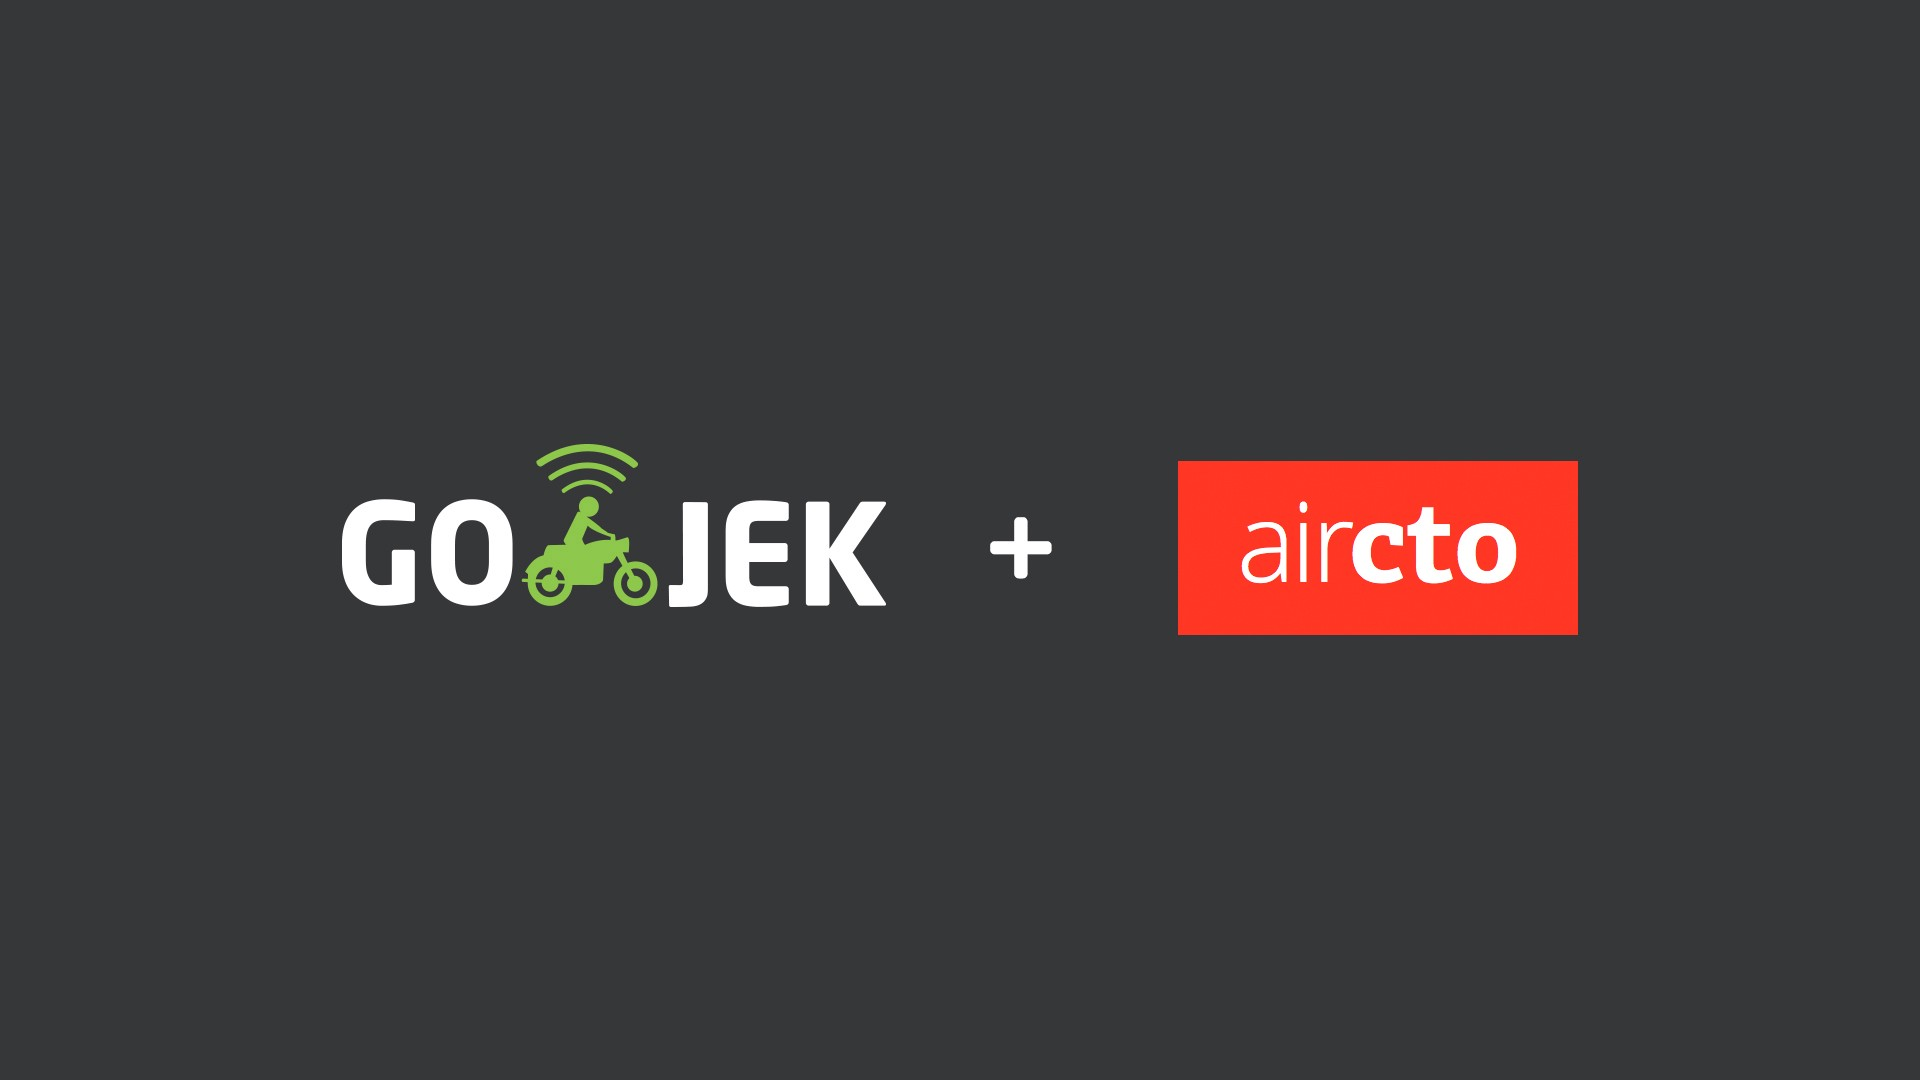 GOJEK acquires AirCTO, expands operations in India - GO-JEK Product